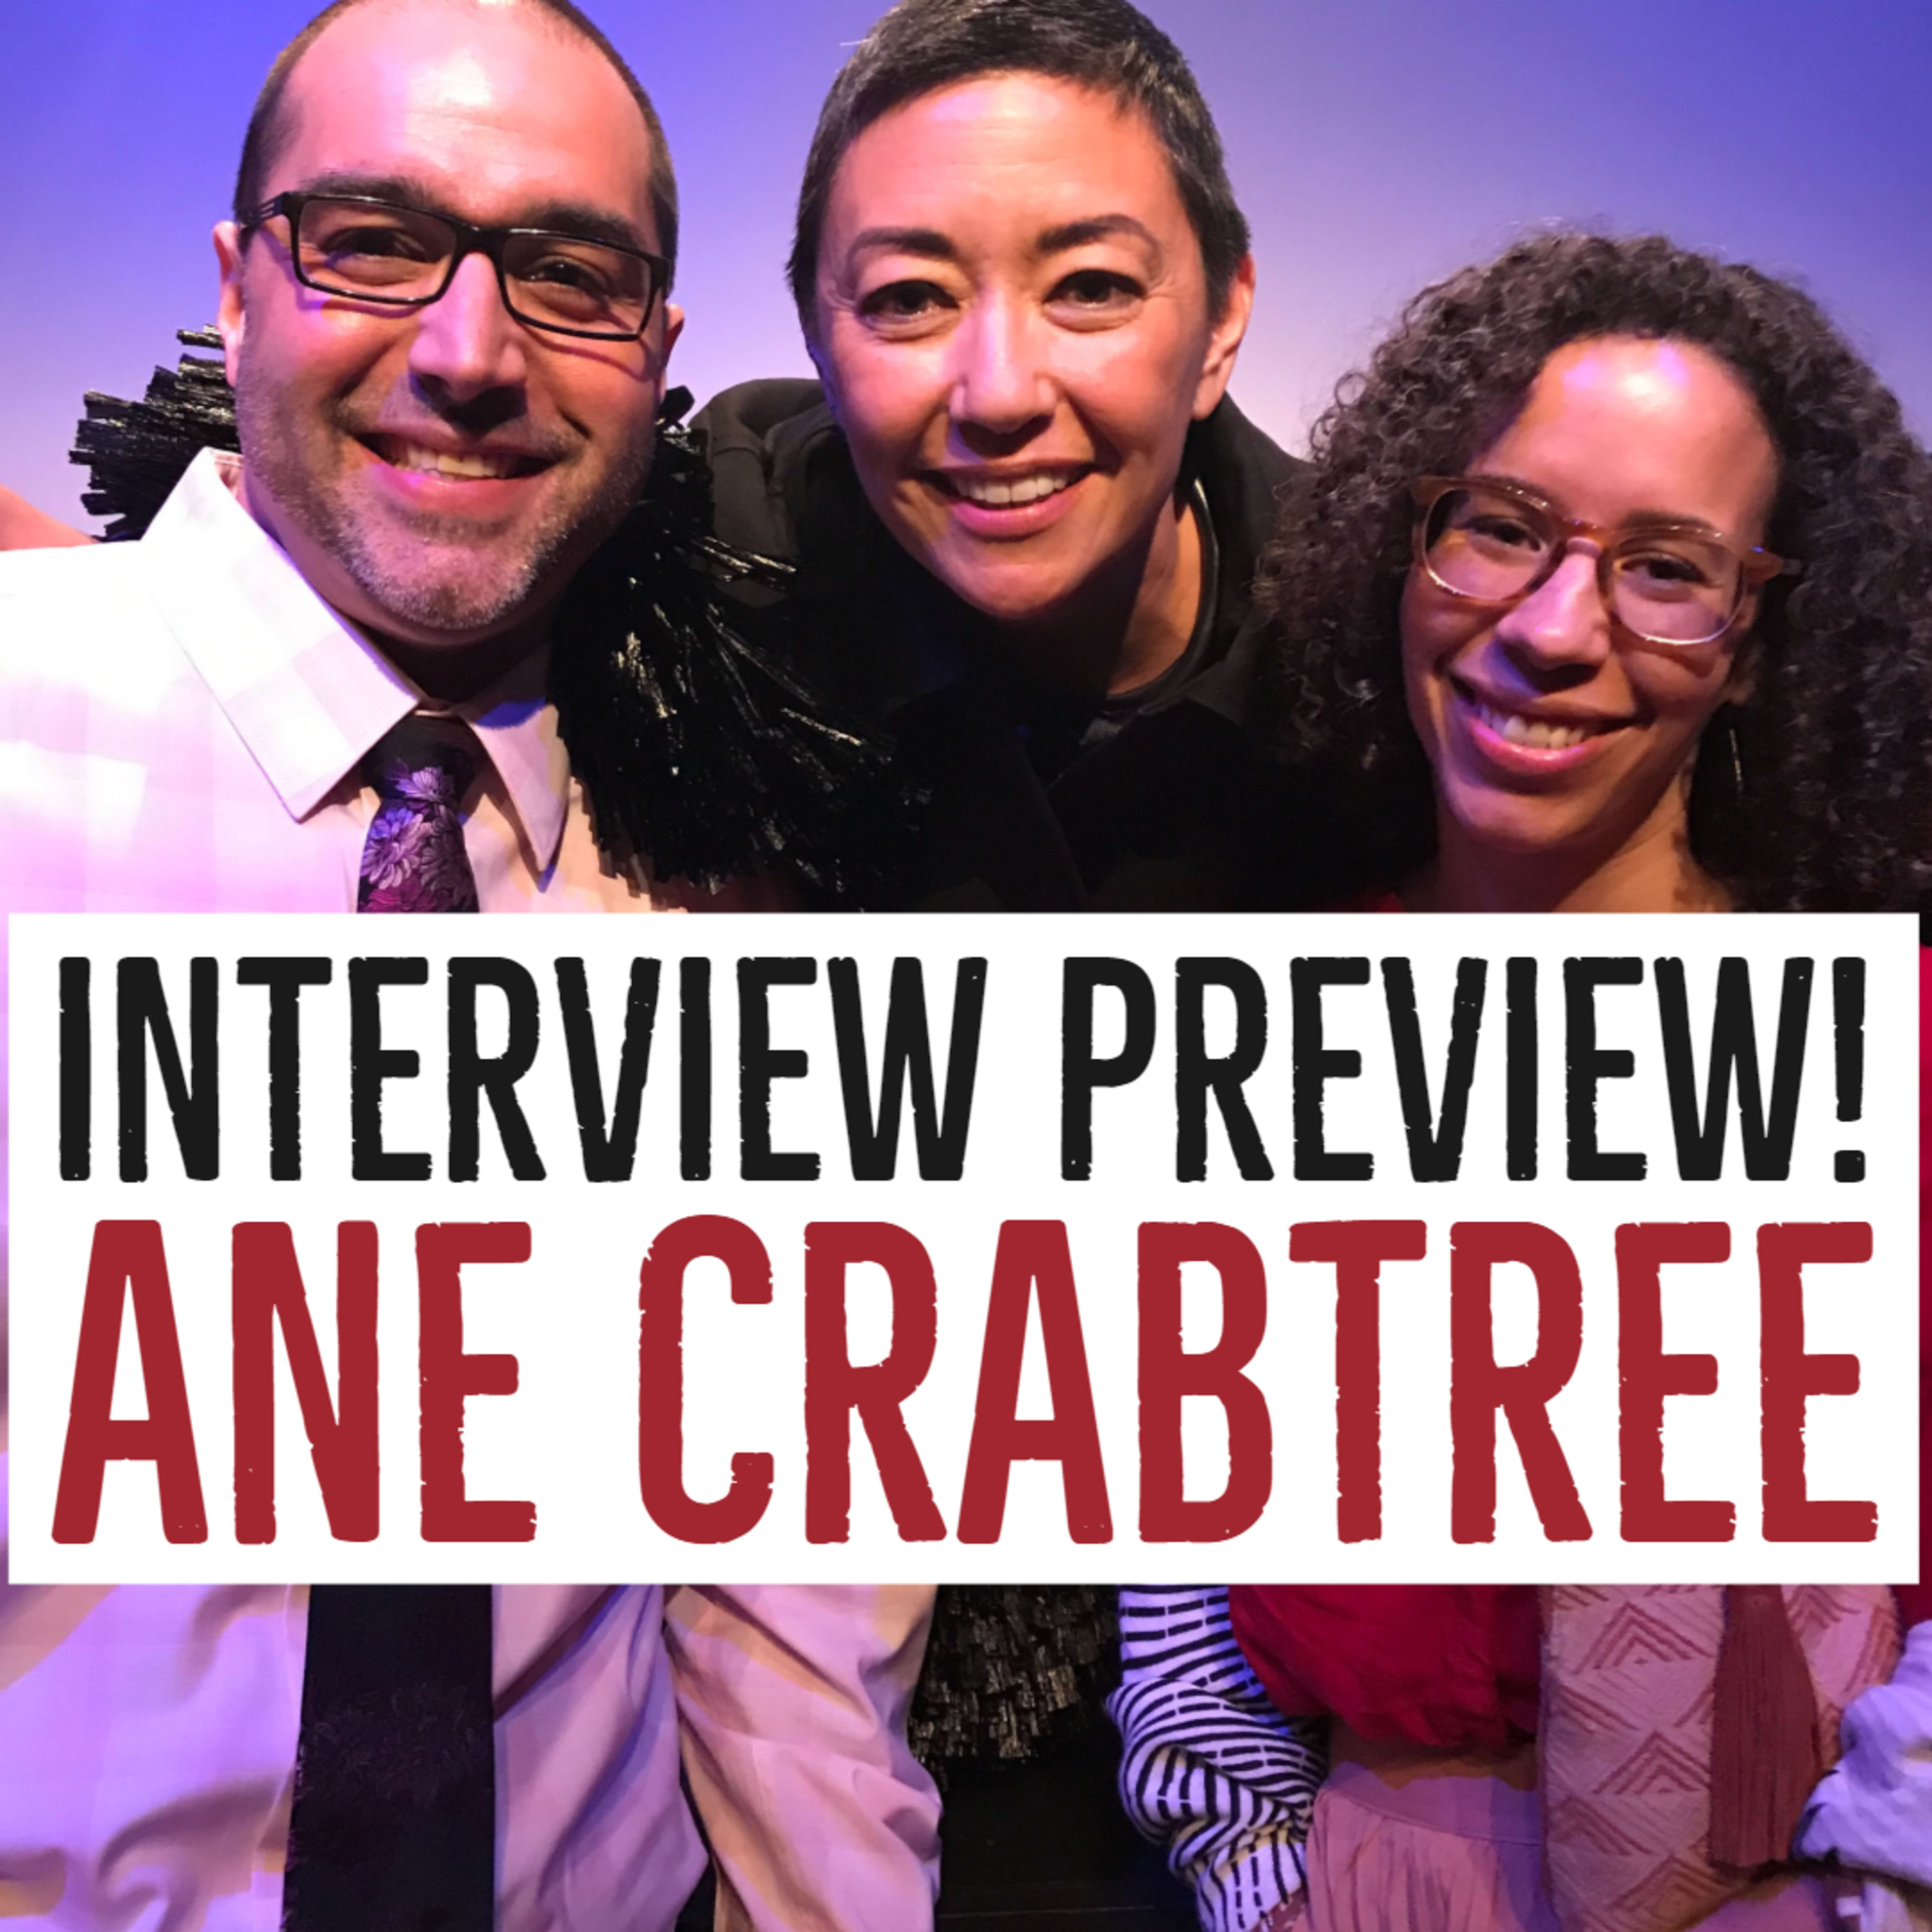 Interview Sneak Peak! Ane Crabtree